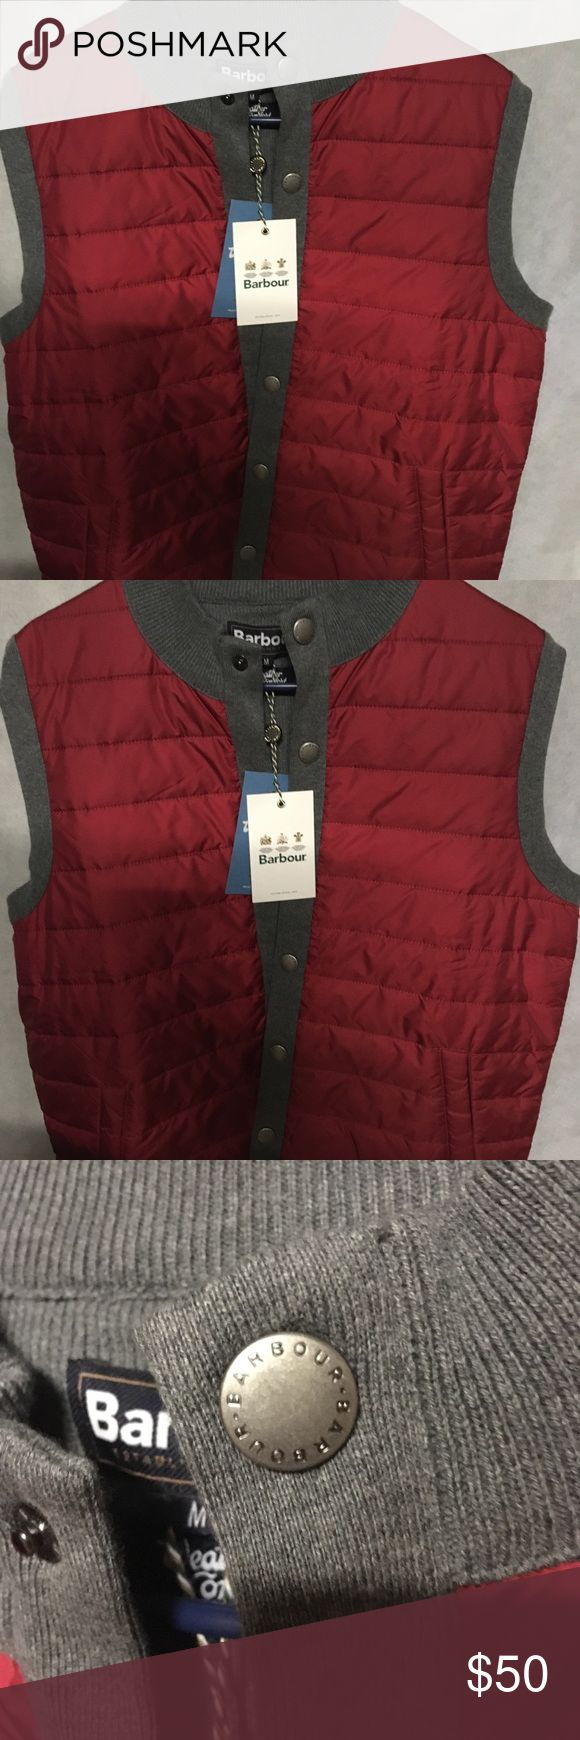 Barbour Essential Gilet Vest Brand New Men Medium Brand new with tags Barbour Gilet barbour Other